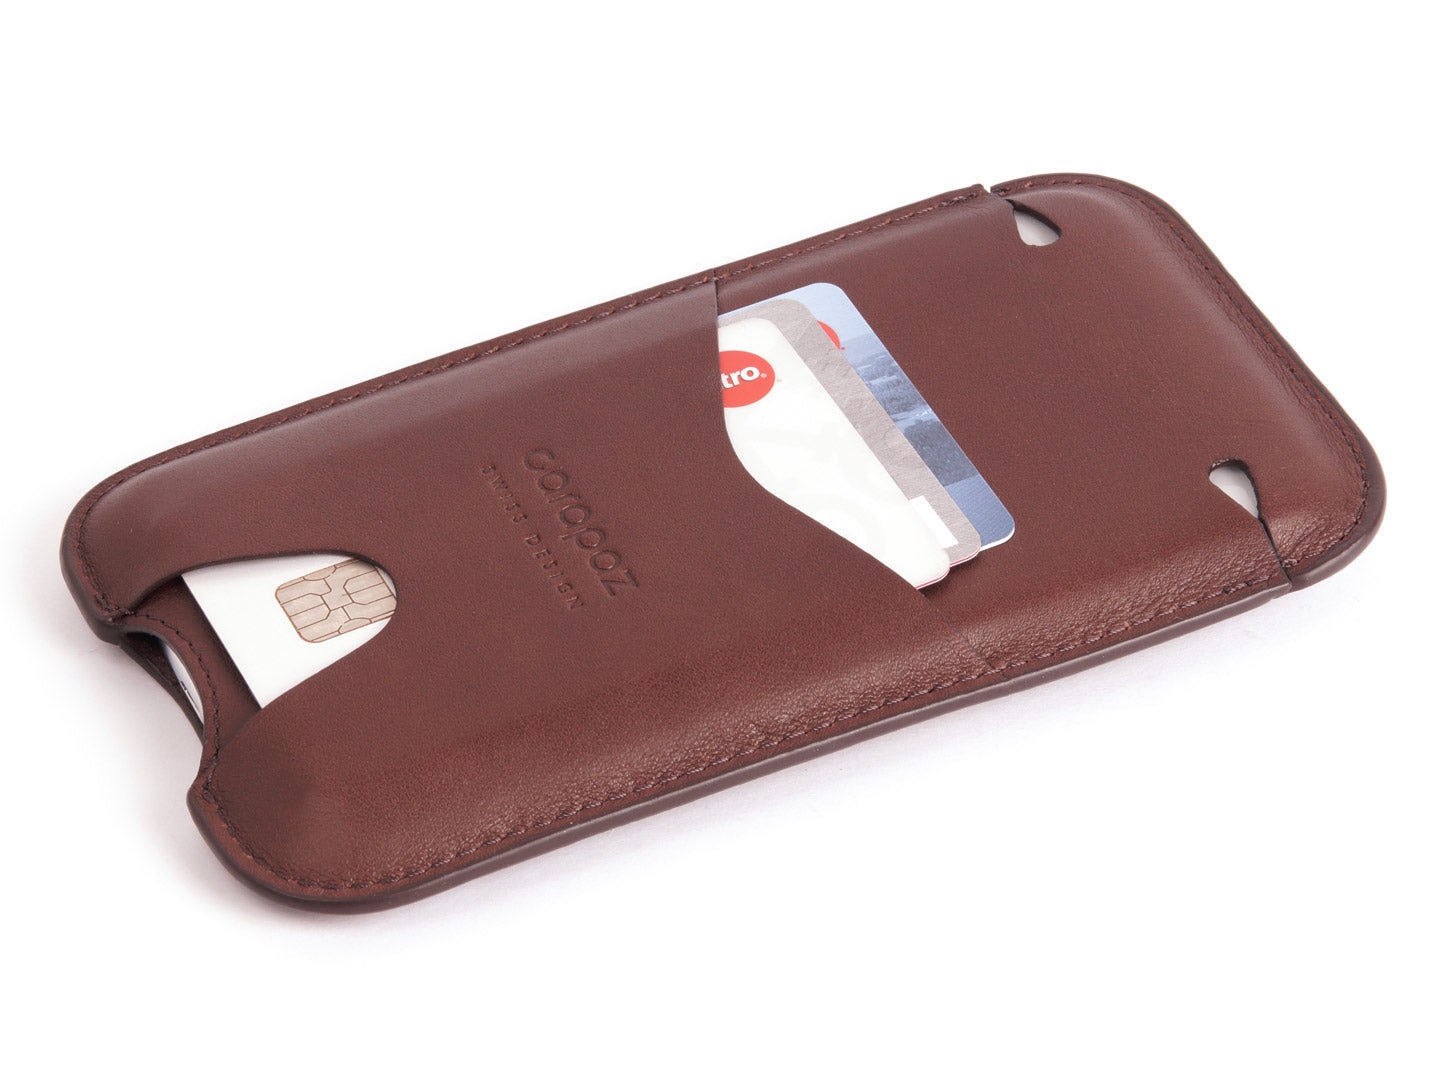 info for 78e6d bd4ba LEATHER POUCH FOR iPHONE X / XS - BROWN